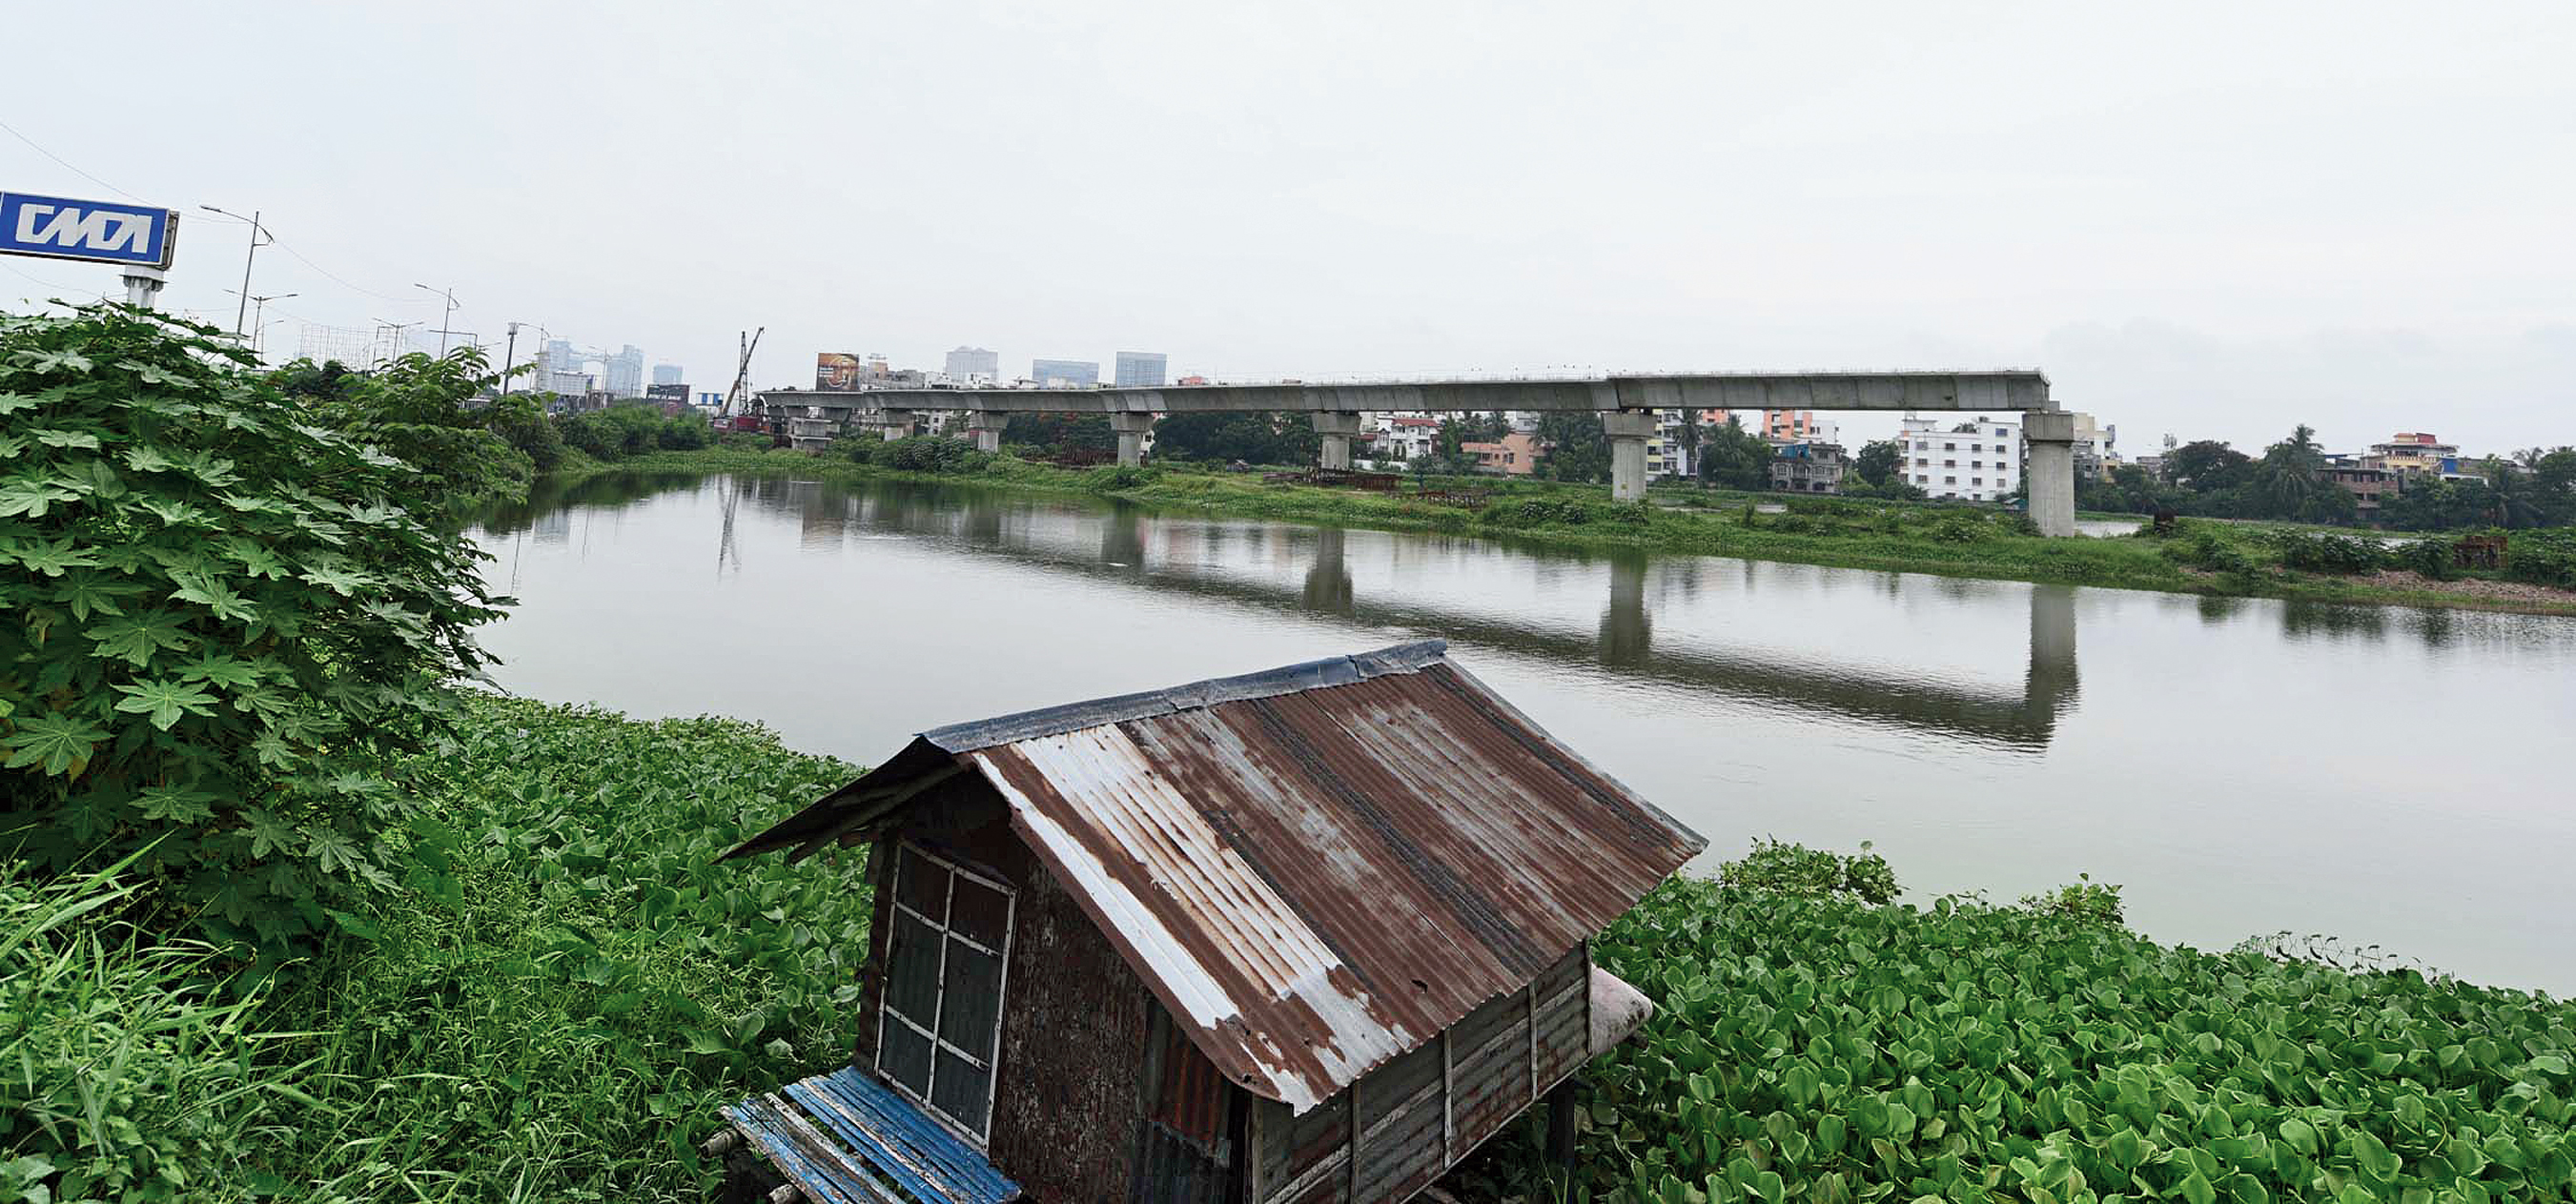 Around 400m of the viaduct of the New Garia-airport Metro has come up on a water body along the EM Bypass near the Chingrighata crossing. The construction of the stretch was stalled since 2011 because the railways were not getting permission from the state government.